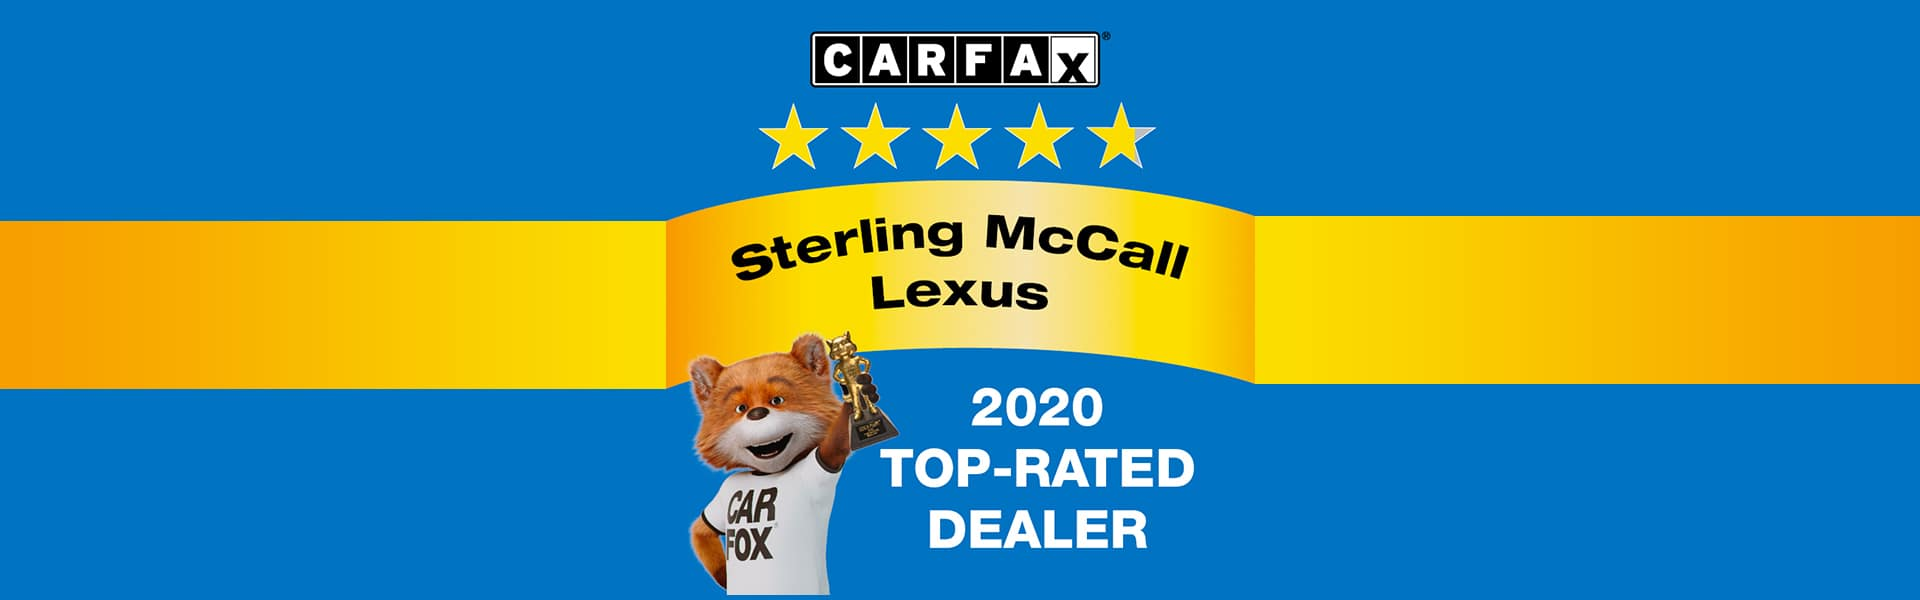 21MAY_SMCL_CarFax_WB_1920x600